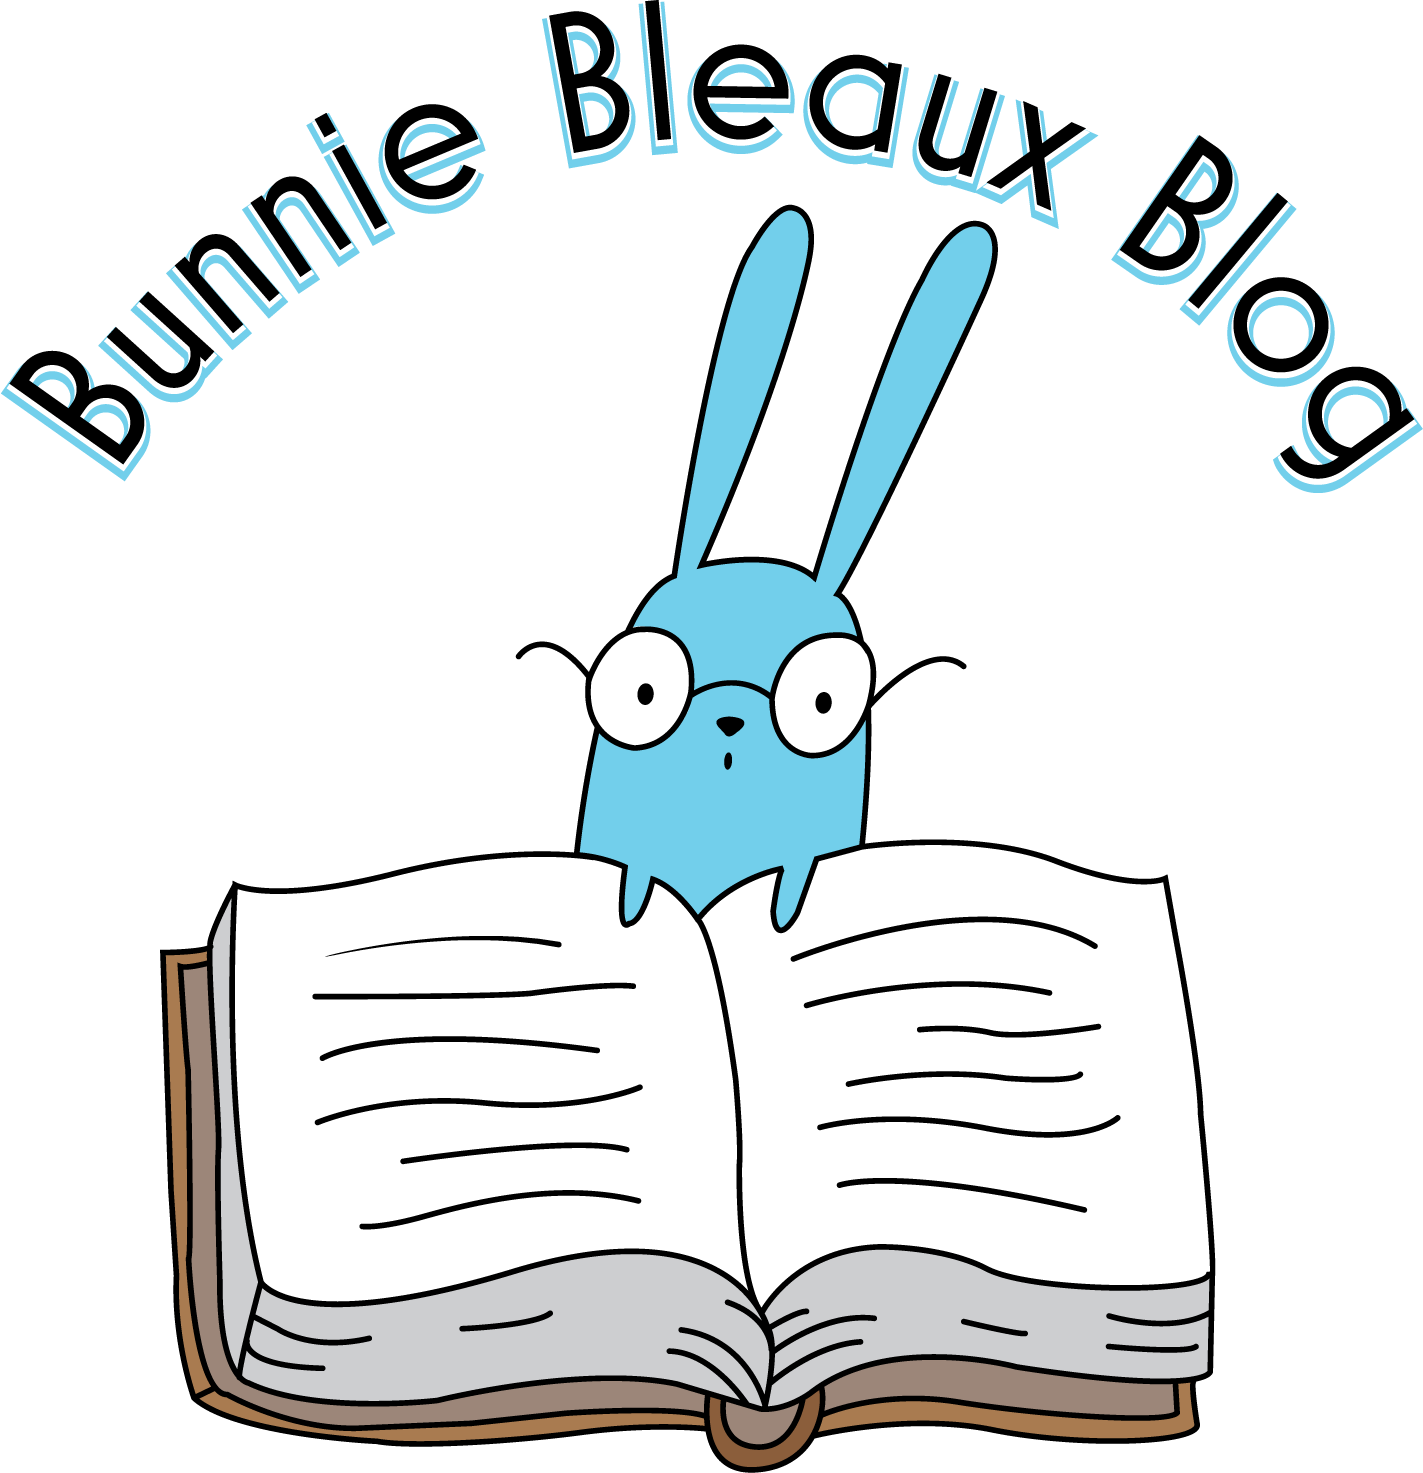 Detective clipart notebook. Bunnie bleaux reader of